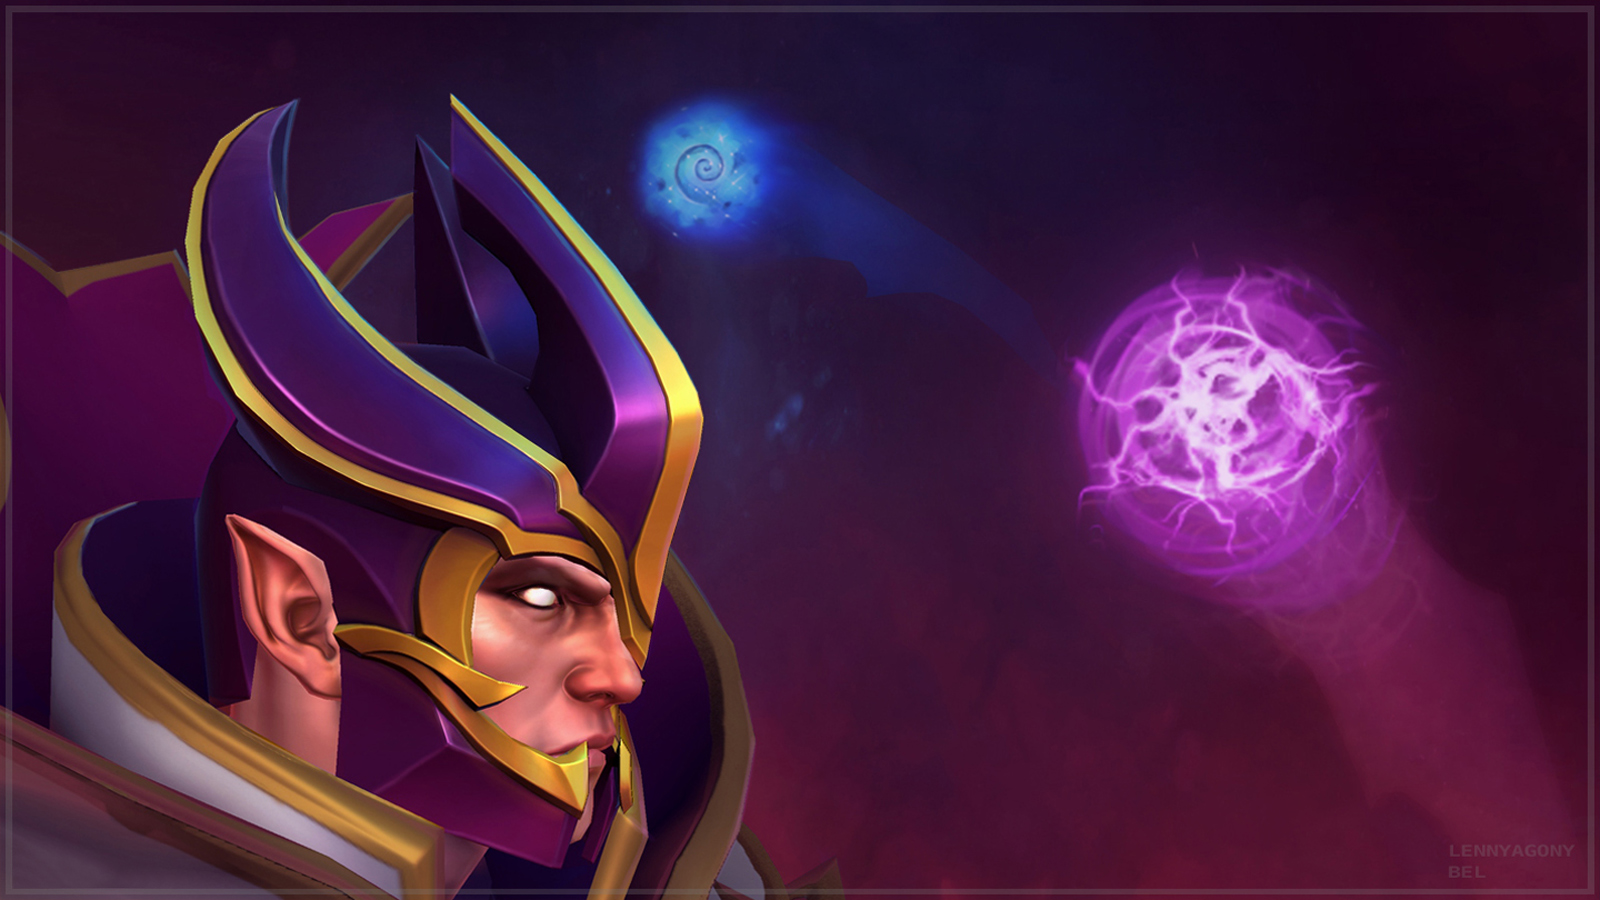 invoker dota 2 game hd wallpaper 1600x900 original full resolution and 1600x900